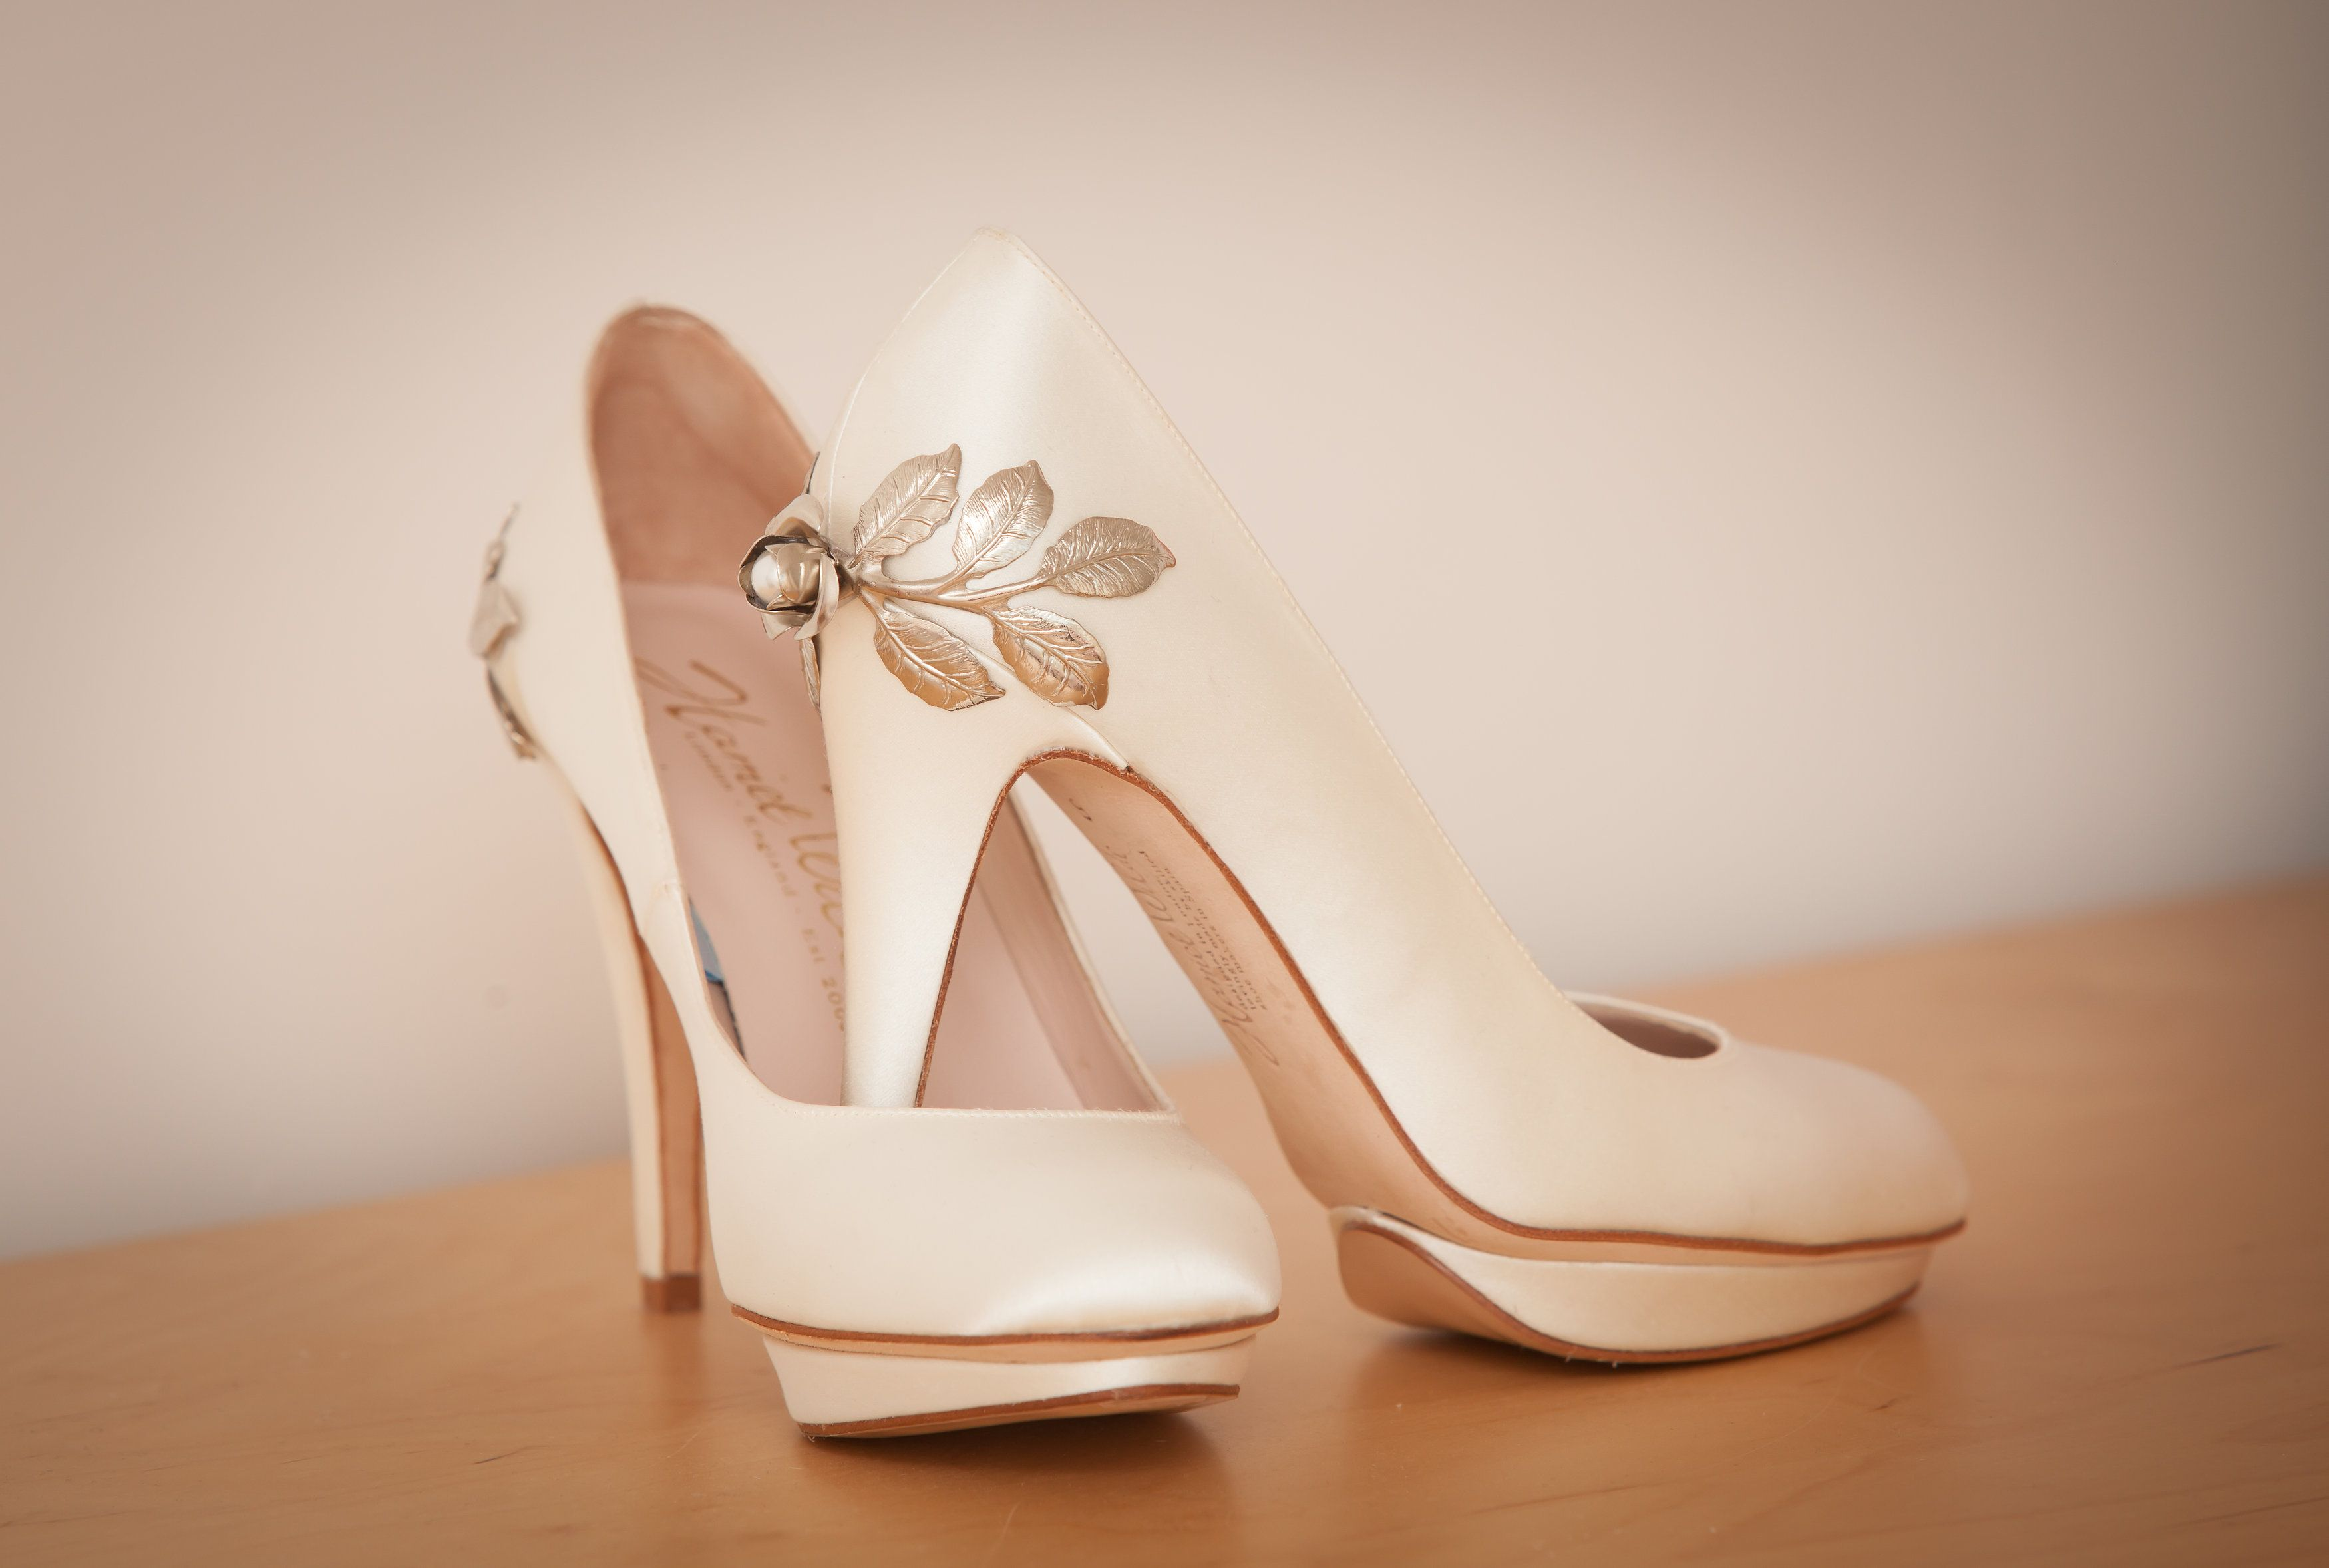 Gorgeous shoes from our fab designer Harriet Wilde! Harriet Wilde, Gardenia. Kirsty Whitaker photography